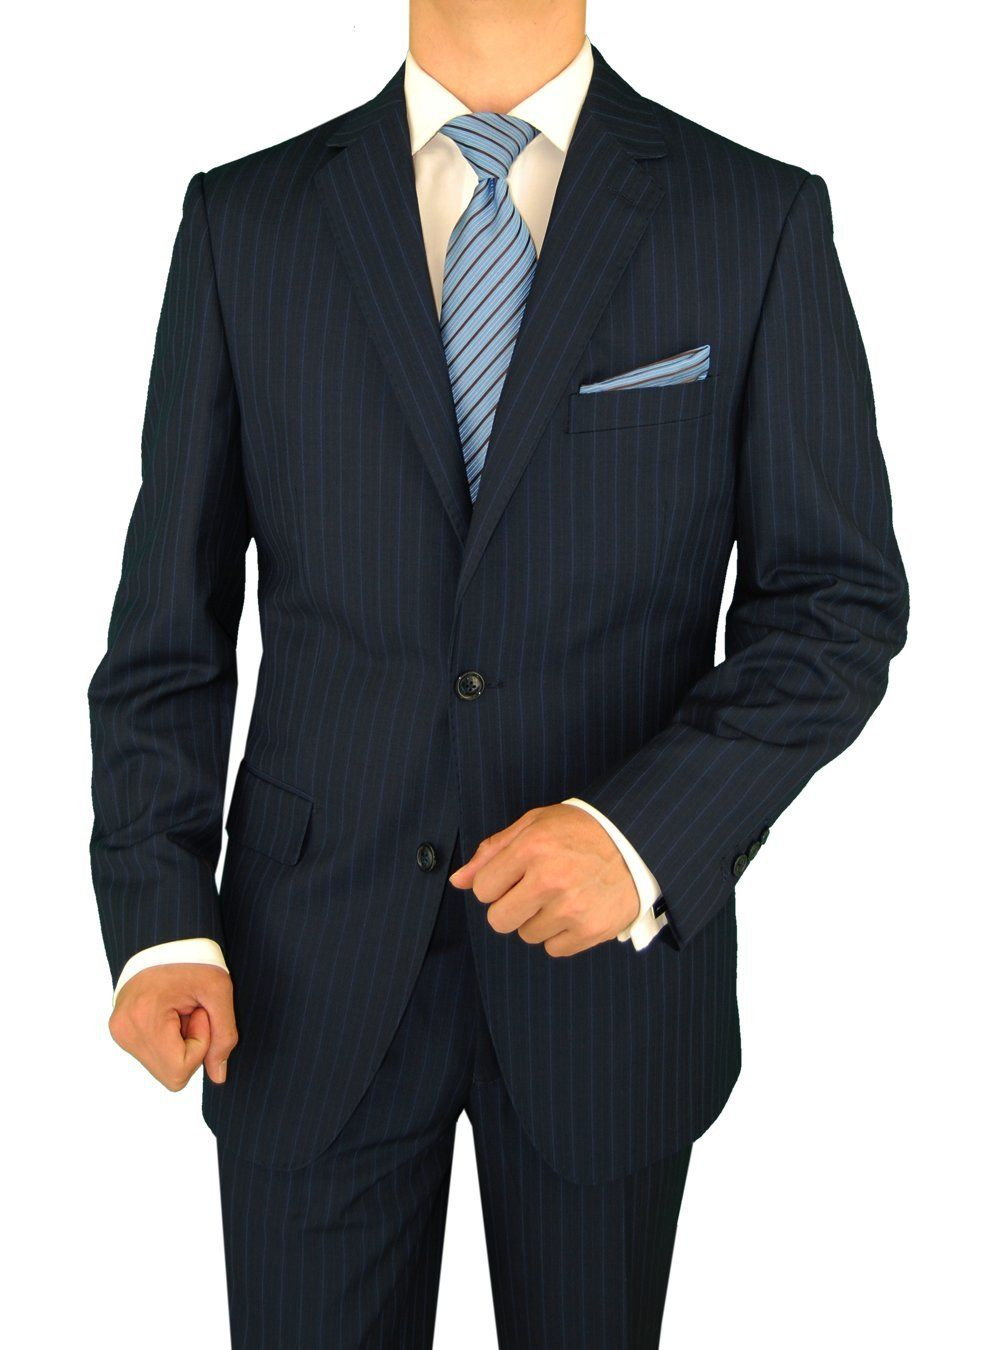 Brioni Suits | Pin it Like Image